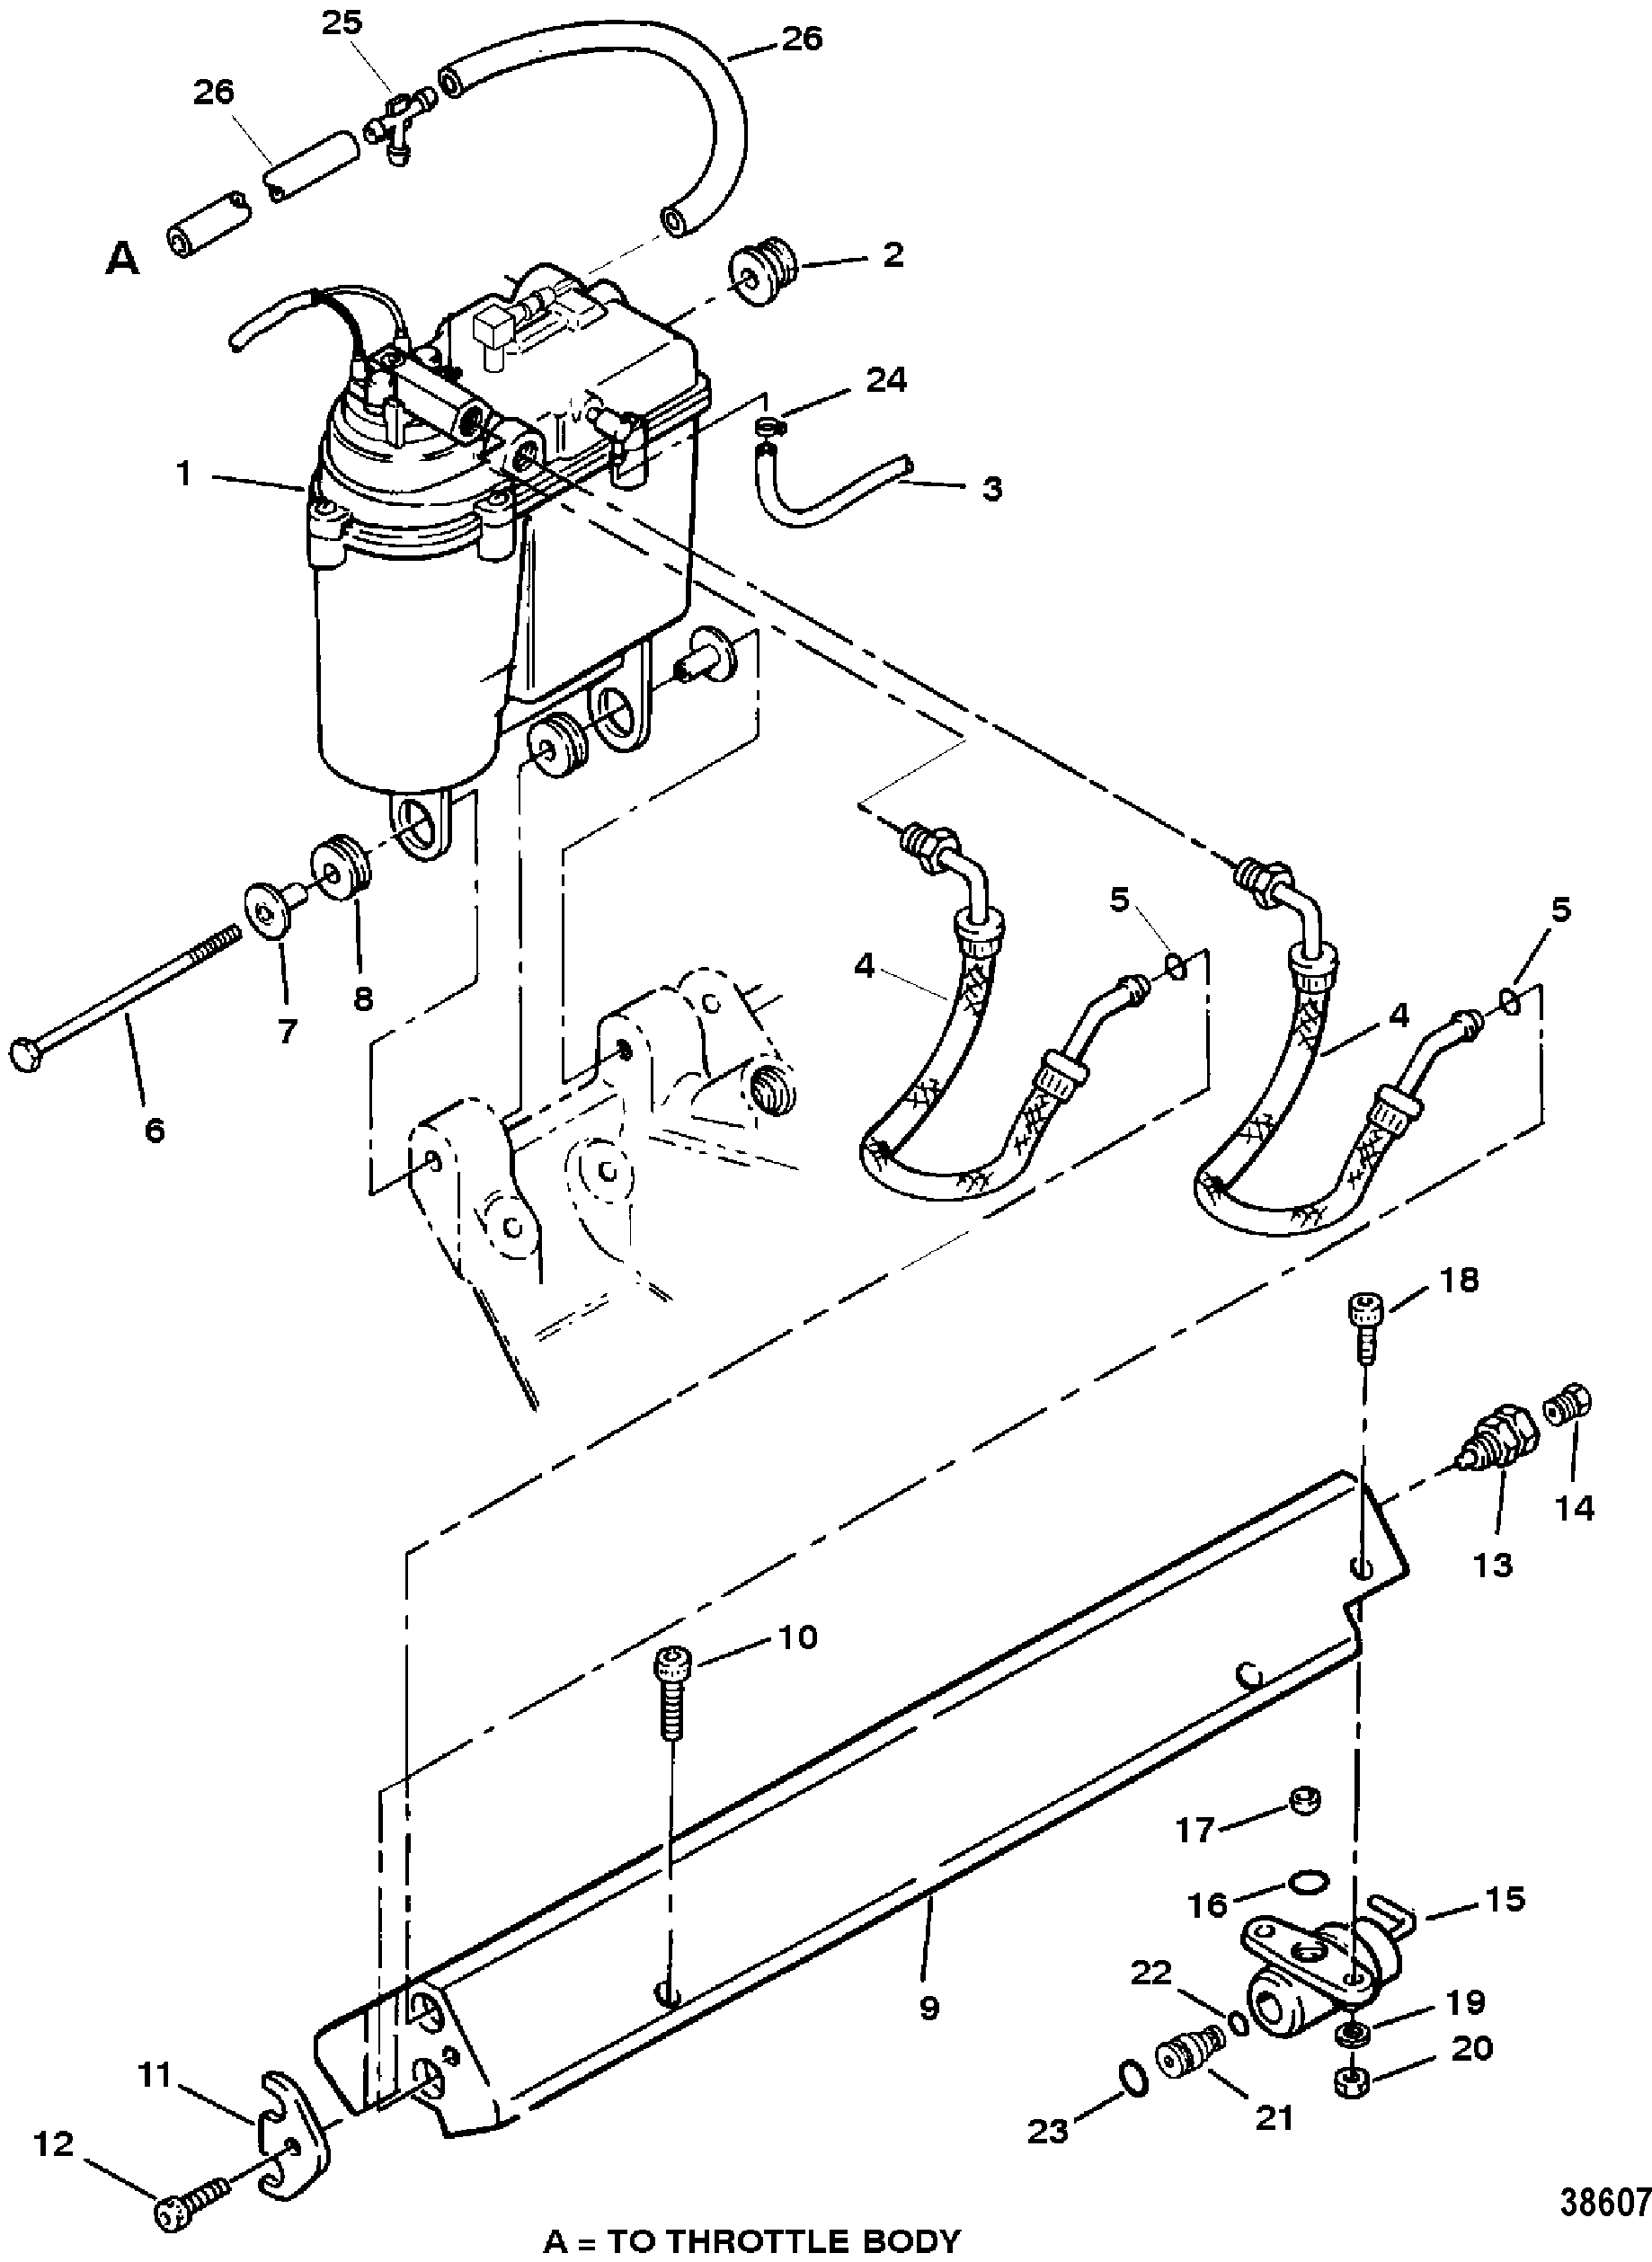 38607 cp performance vapor separator tank and fuel rail 1996 mercruiser 5.7 wiring diagram at panicattacktreatment.co